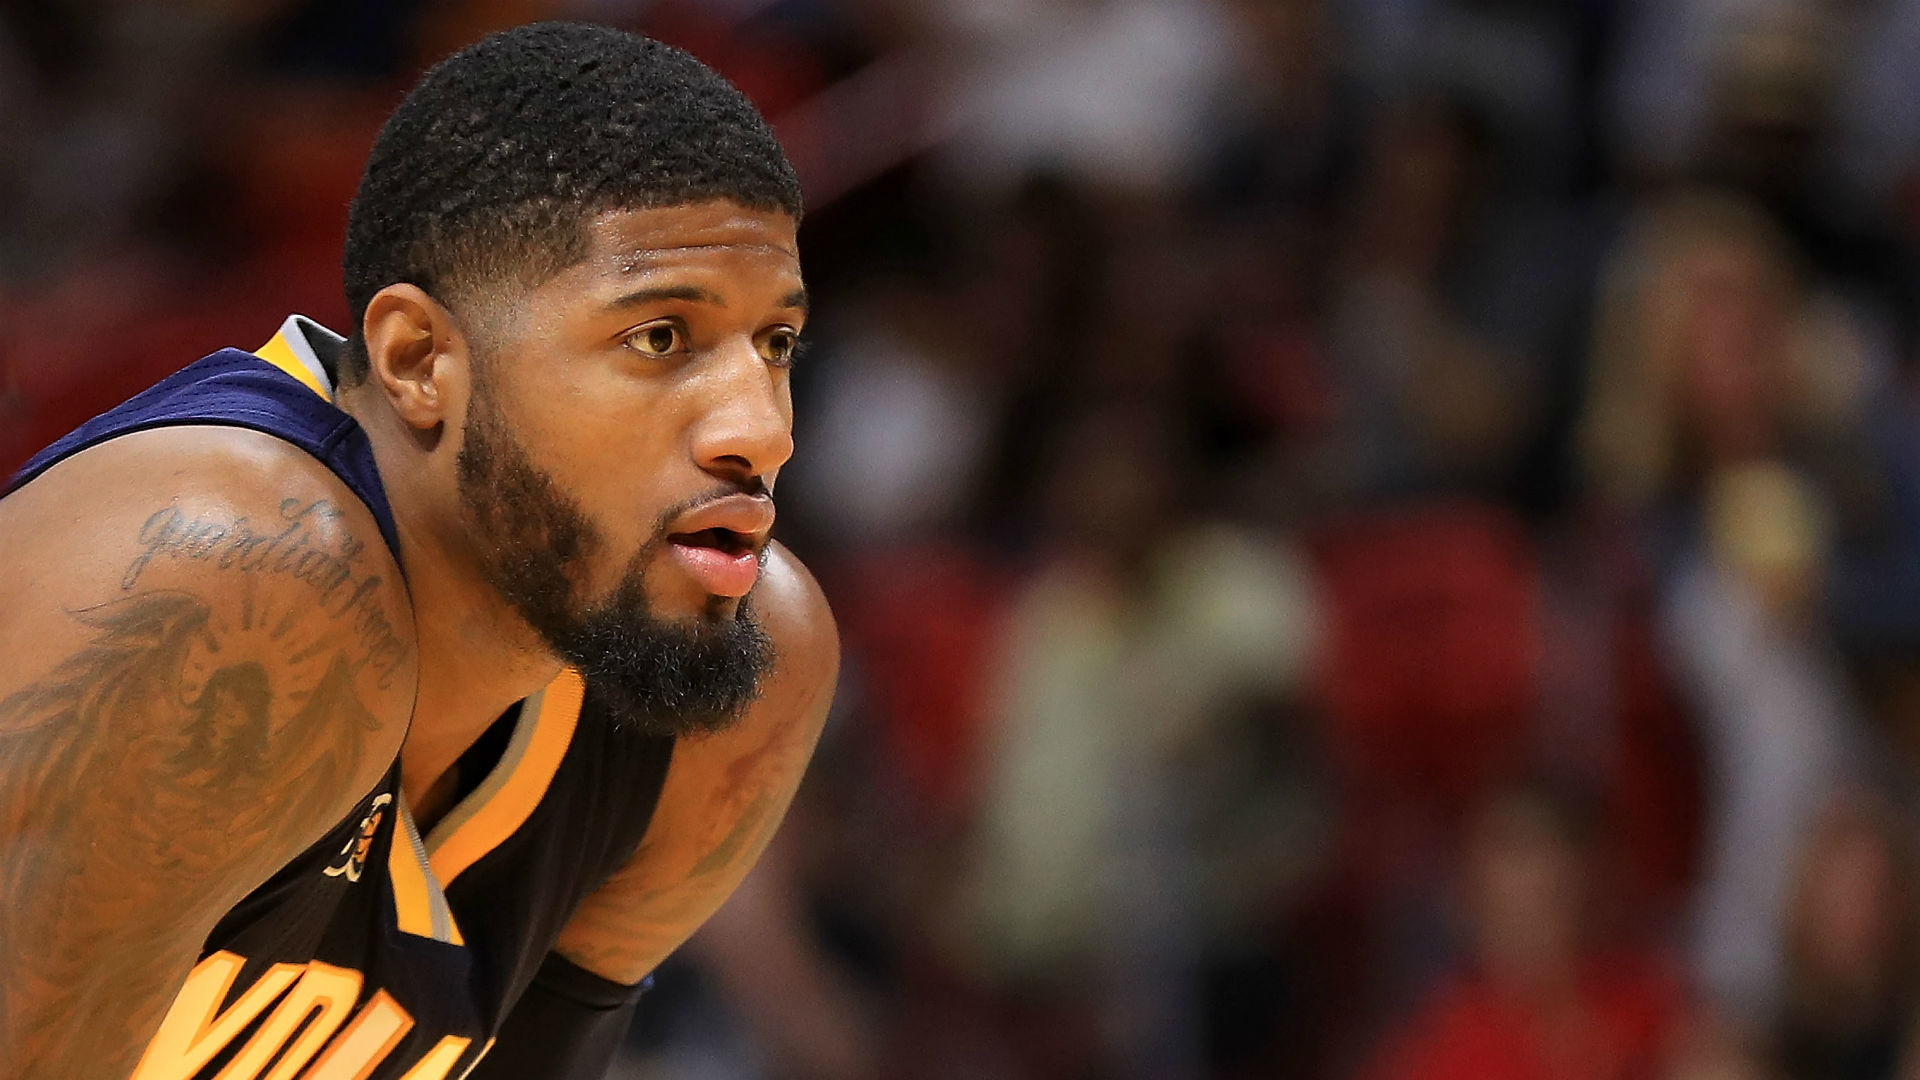 For Paul George and the Pacers, the future remains murky | NBA | Sporting  News